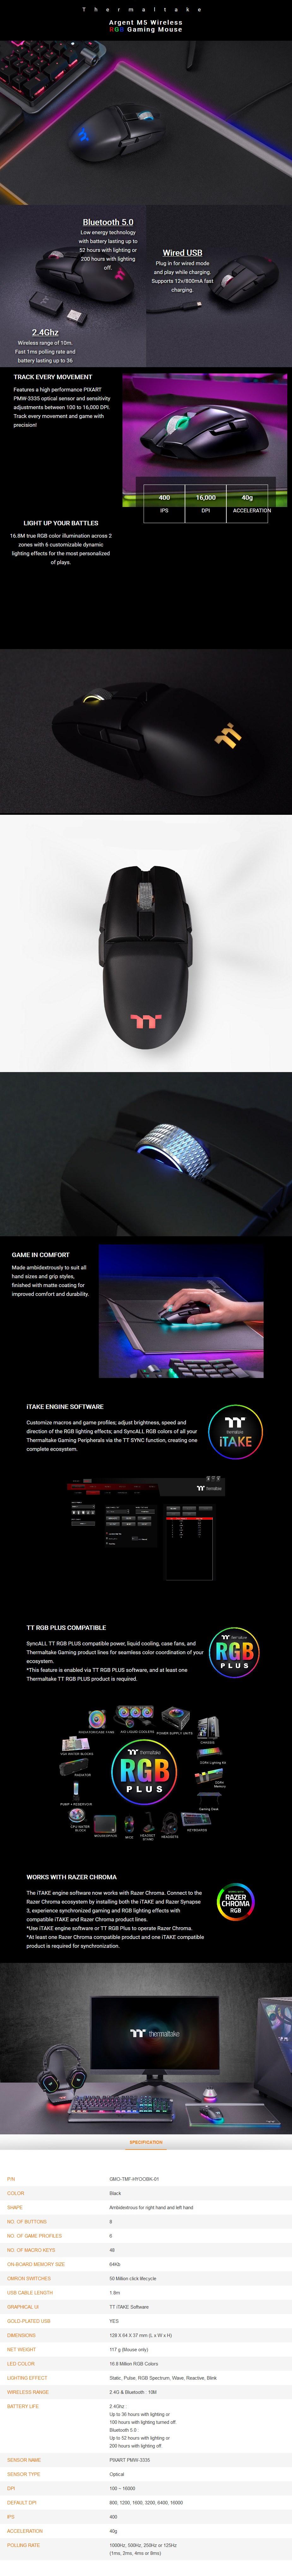 -thermaltake-argent-m5-rgb-optical-wireless-gaming-mouse-ac42199-7.jpg